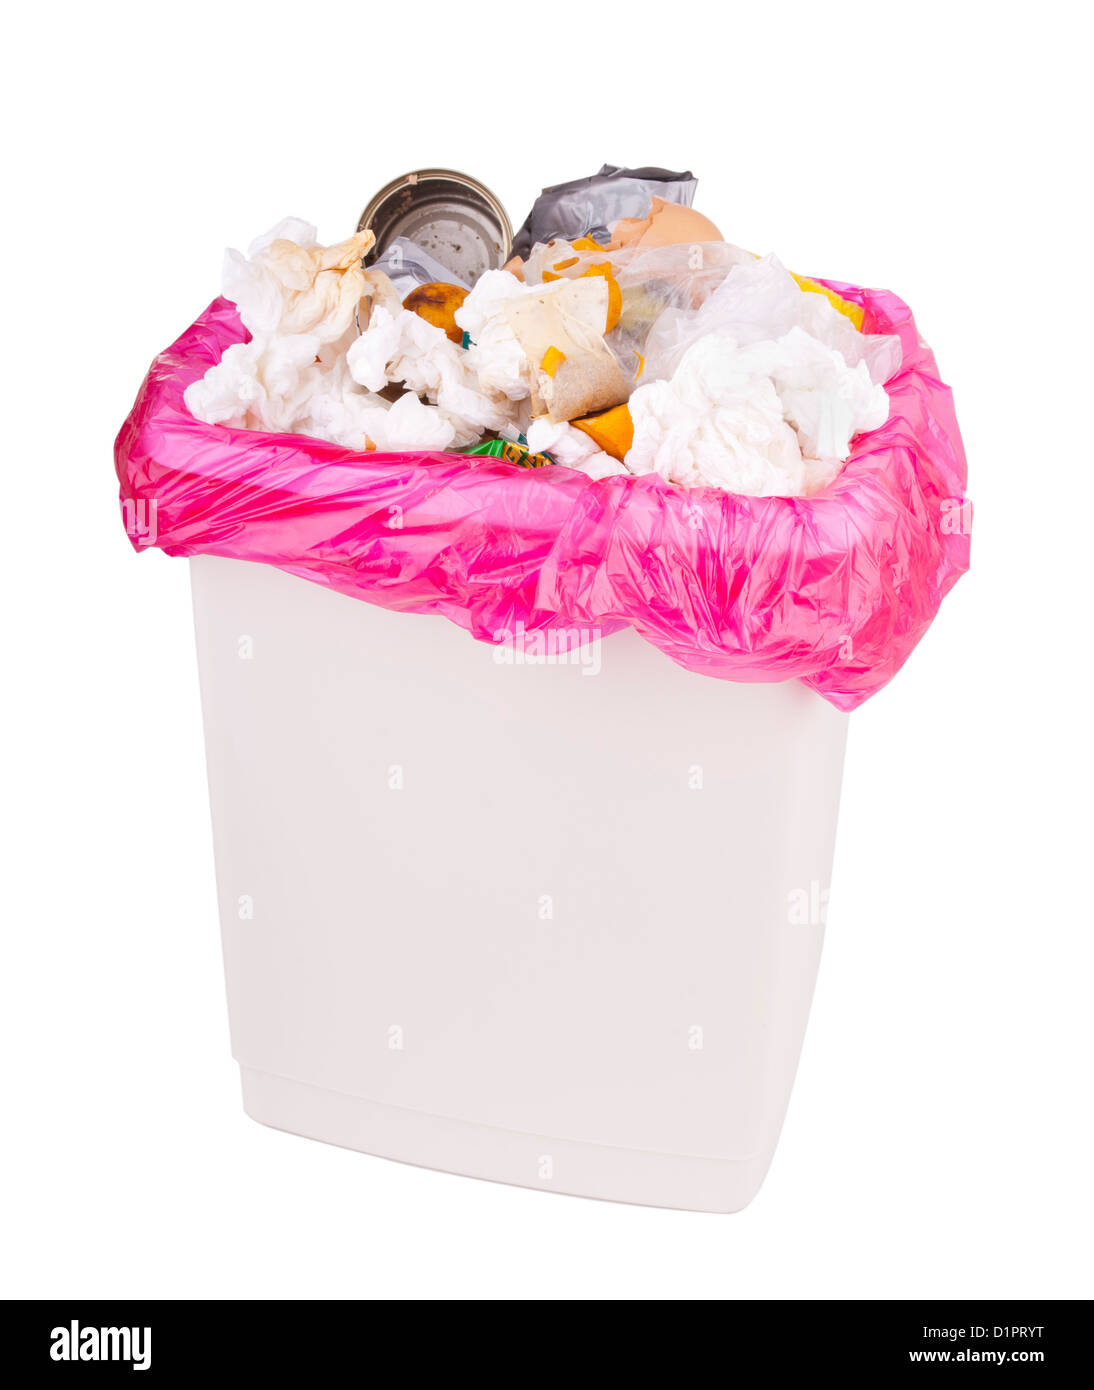 Trash can filled with rubbish and garbage, isolated with clipping path - Stock Image